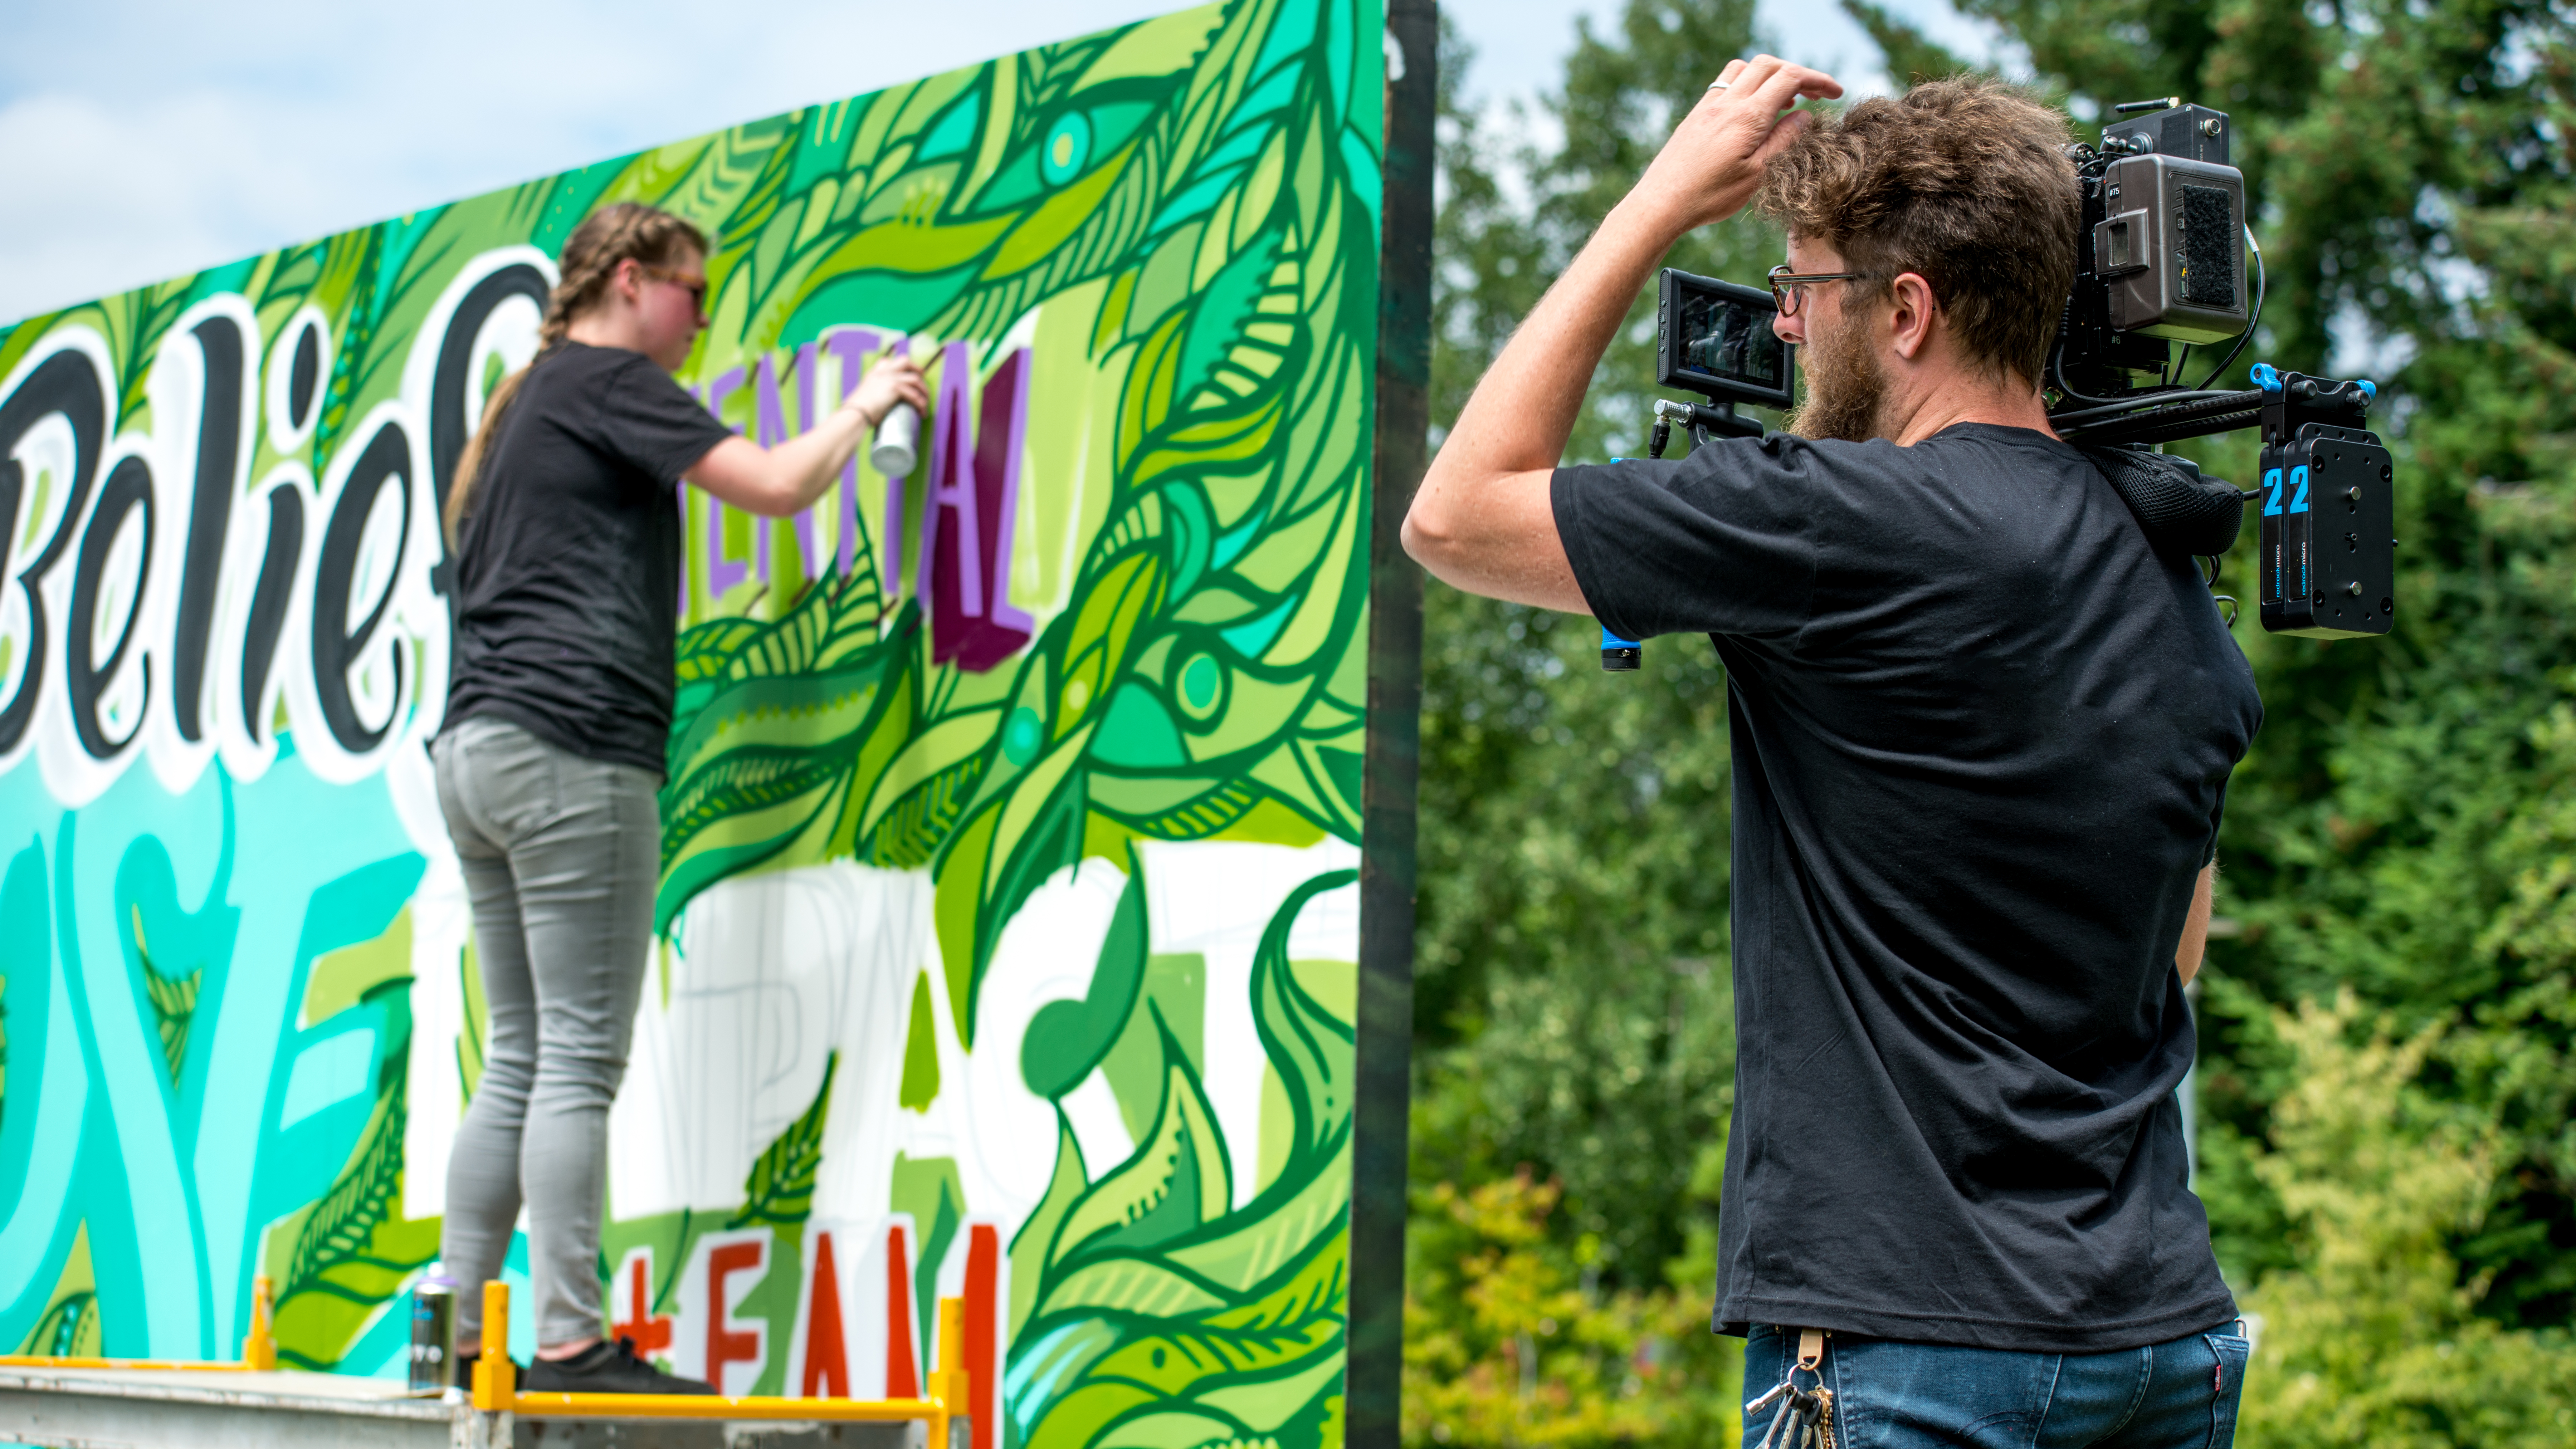 Director of Photography/camera operator on video production set filming a person painting a graffiti wall outside.